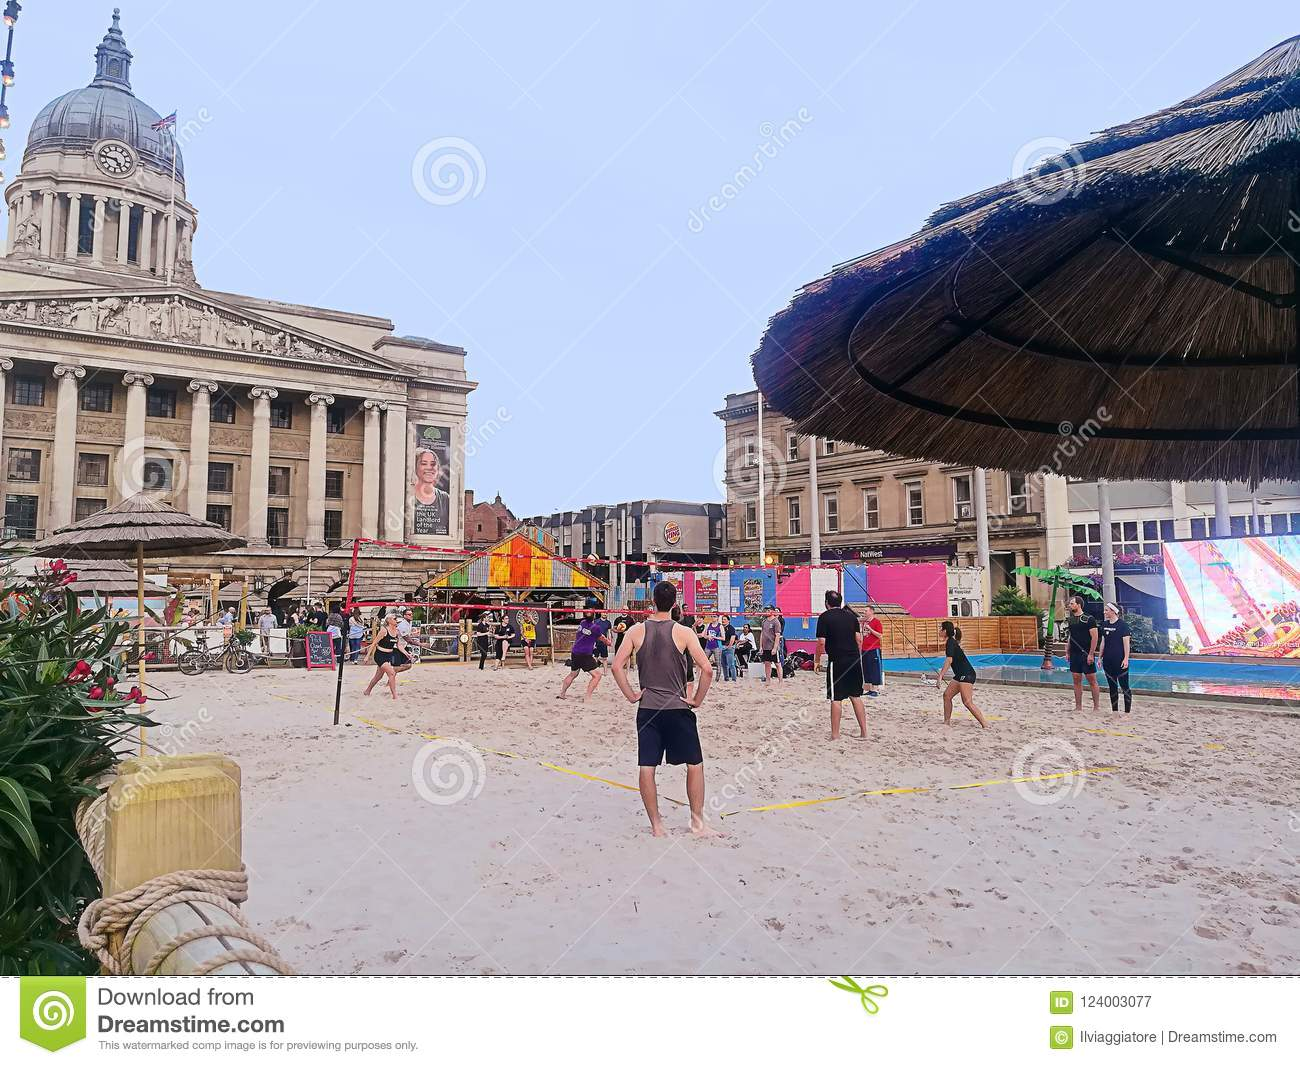 England, beach volleyball near Nottingham city hall